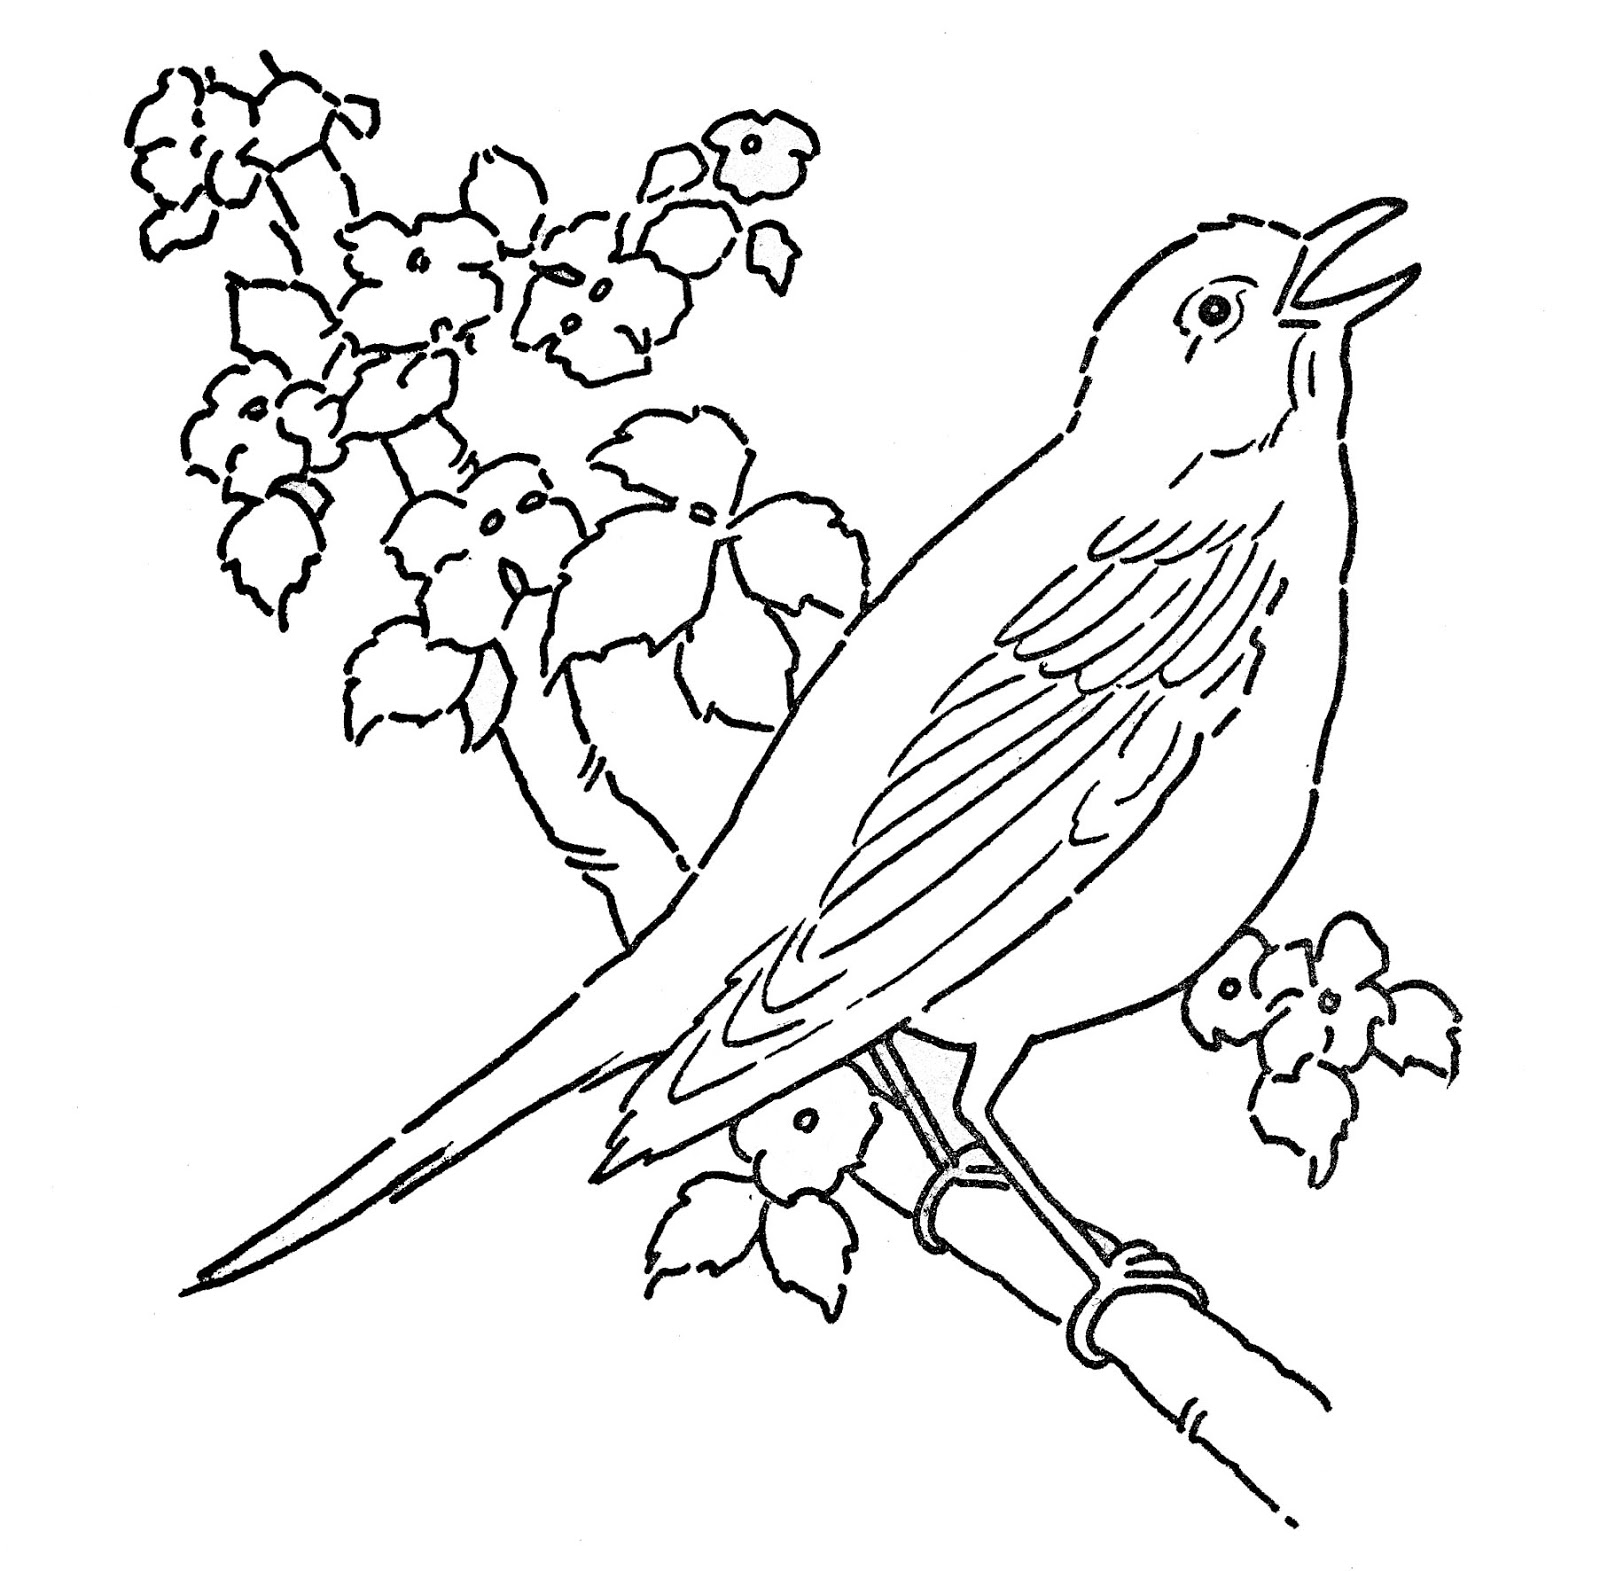 Photo To Line Art Converter Free Download : Line drawing of birds clipart best